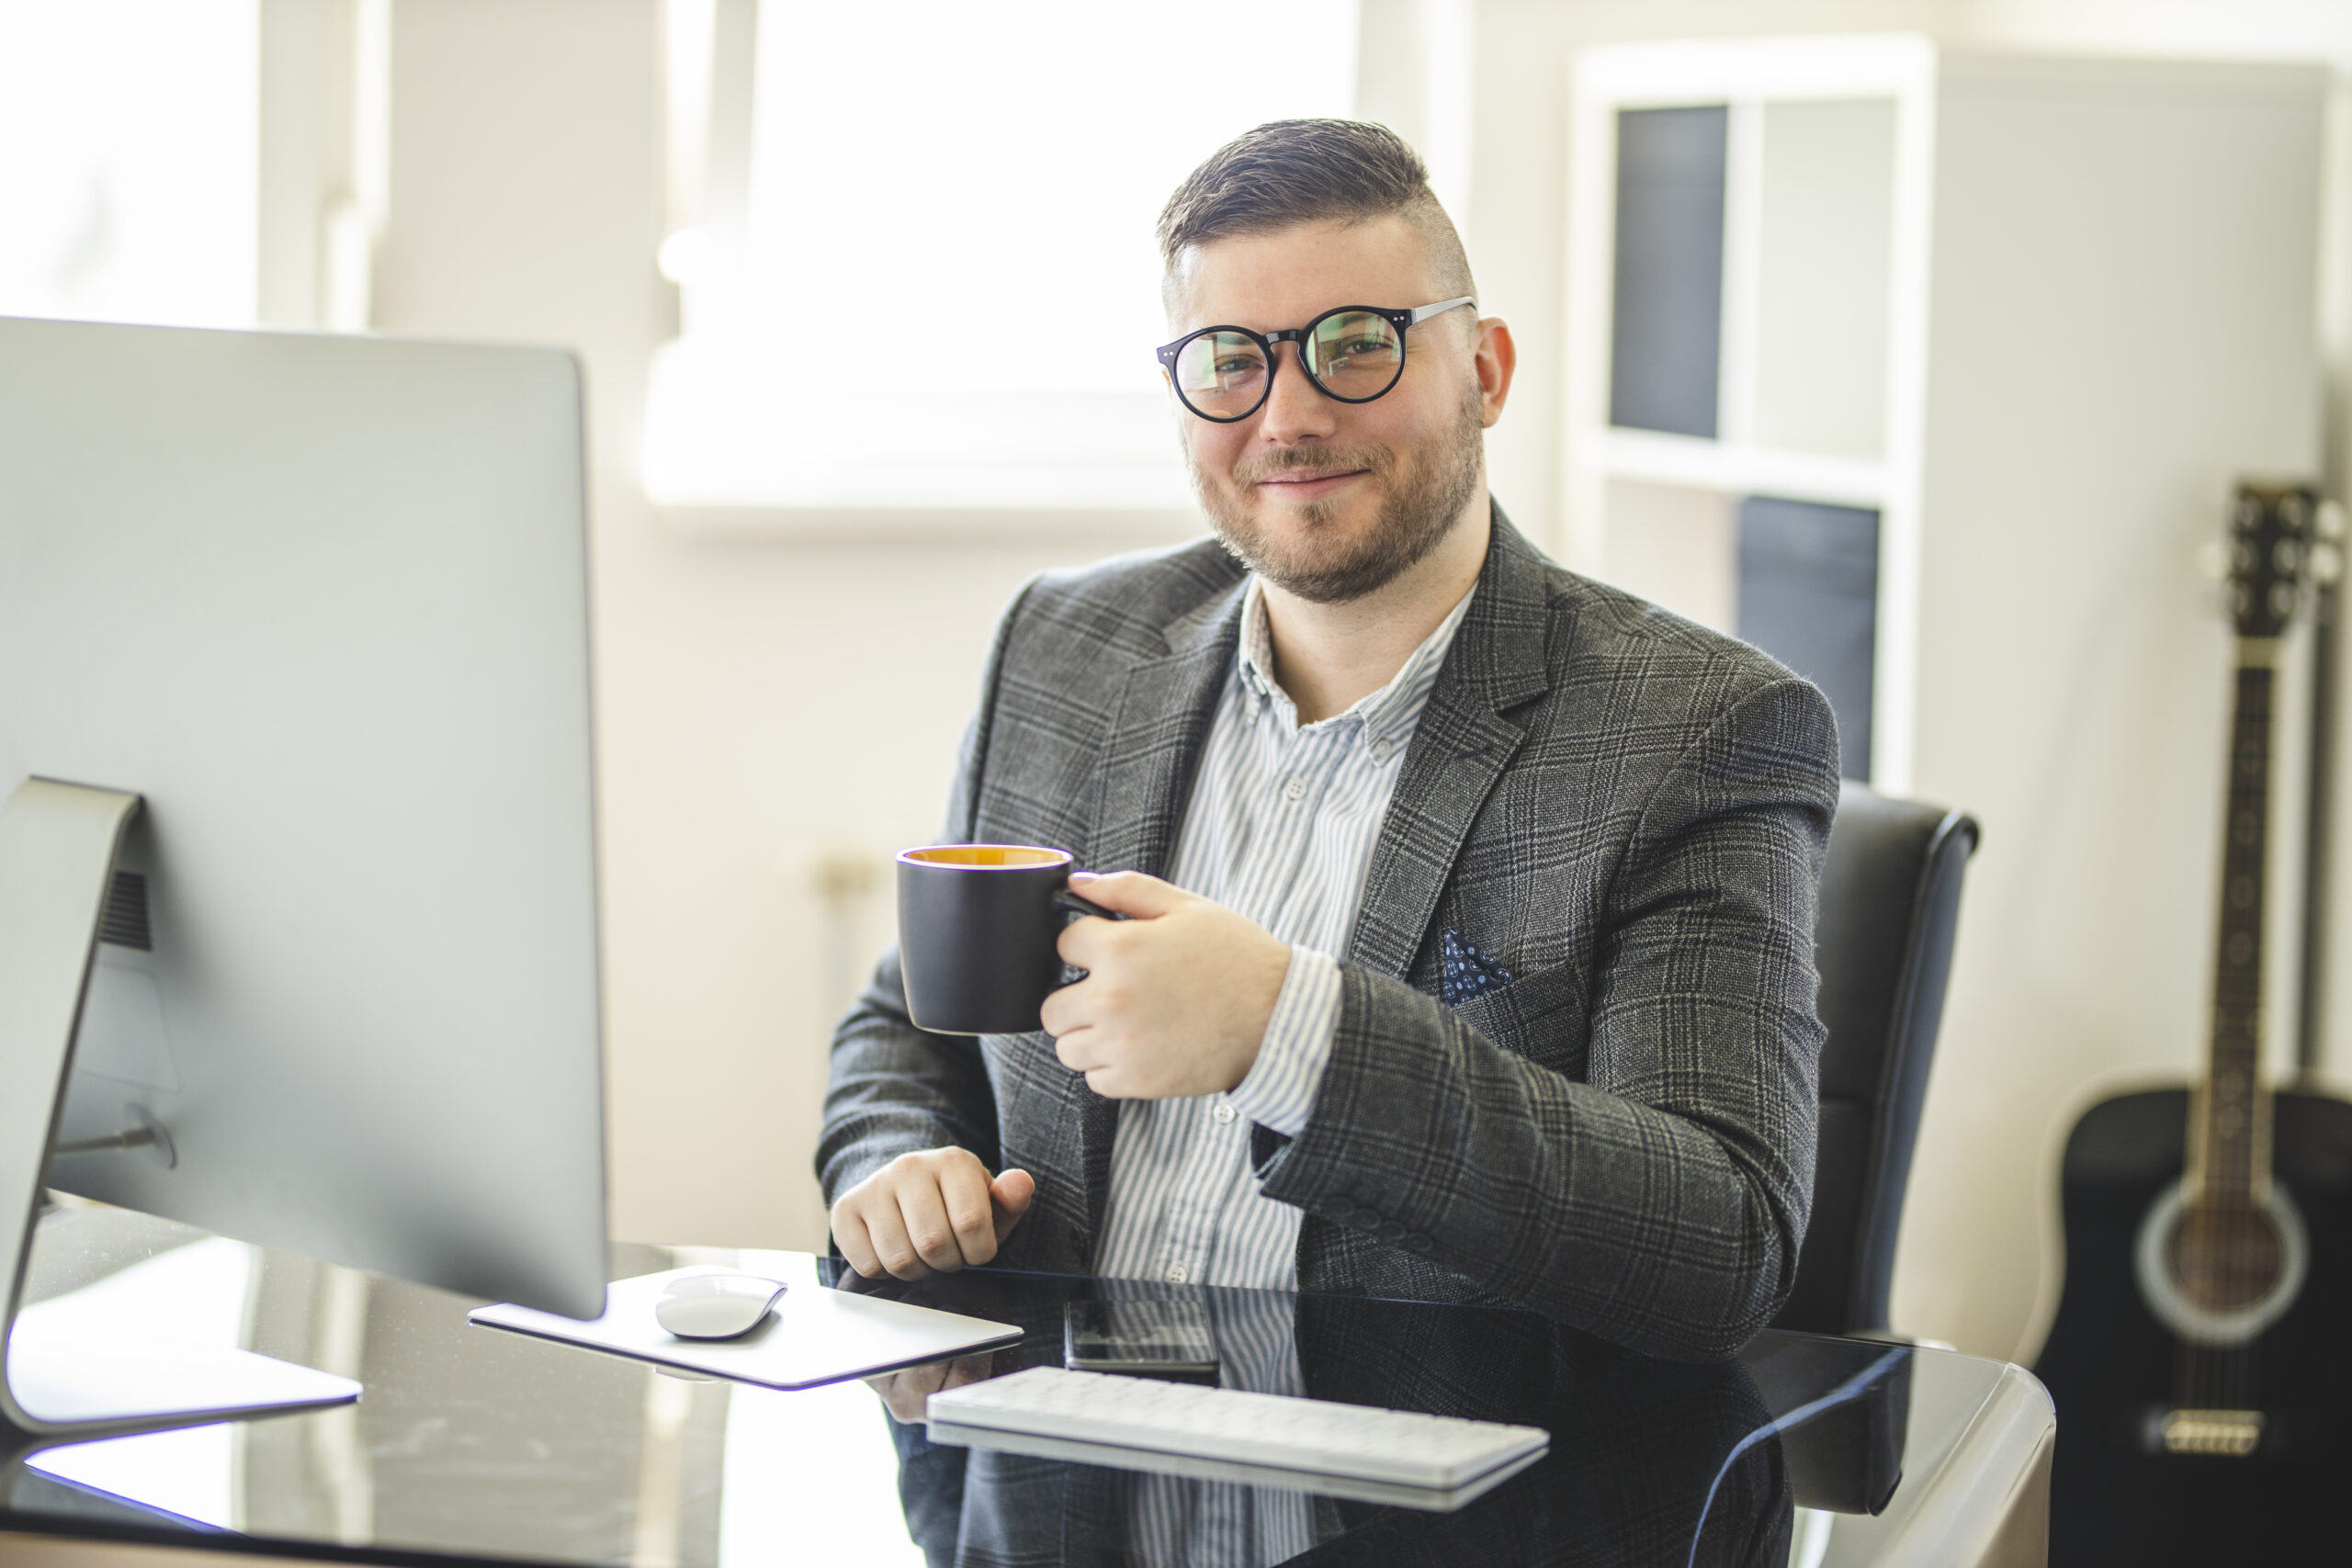 Portrait of successful entrepreneur drinking coffee and using computer at cozy home office